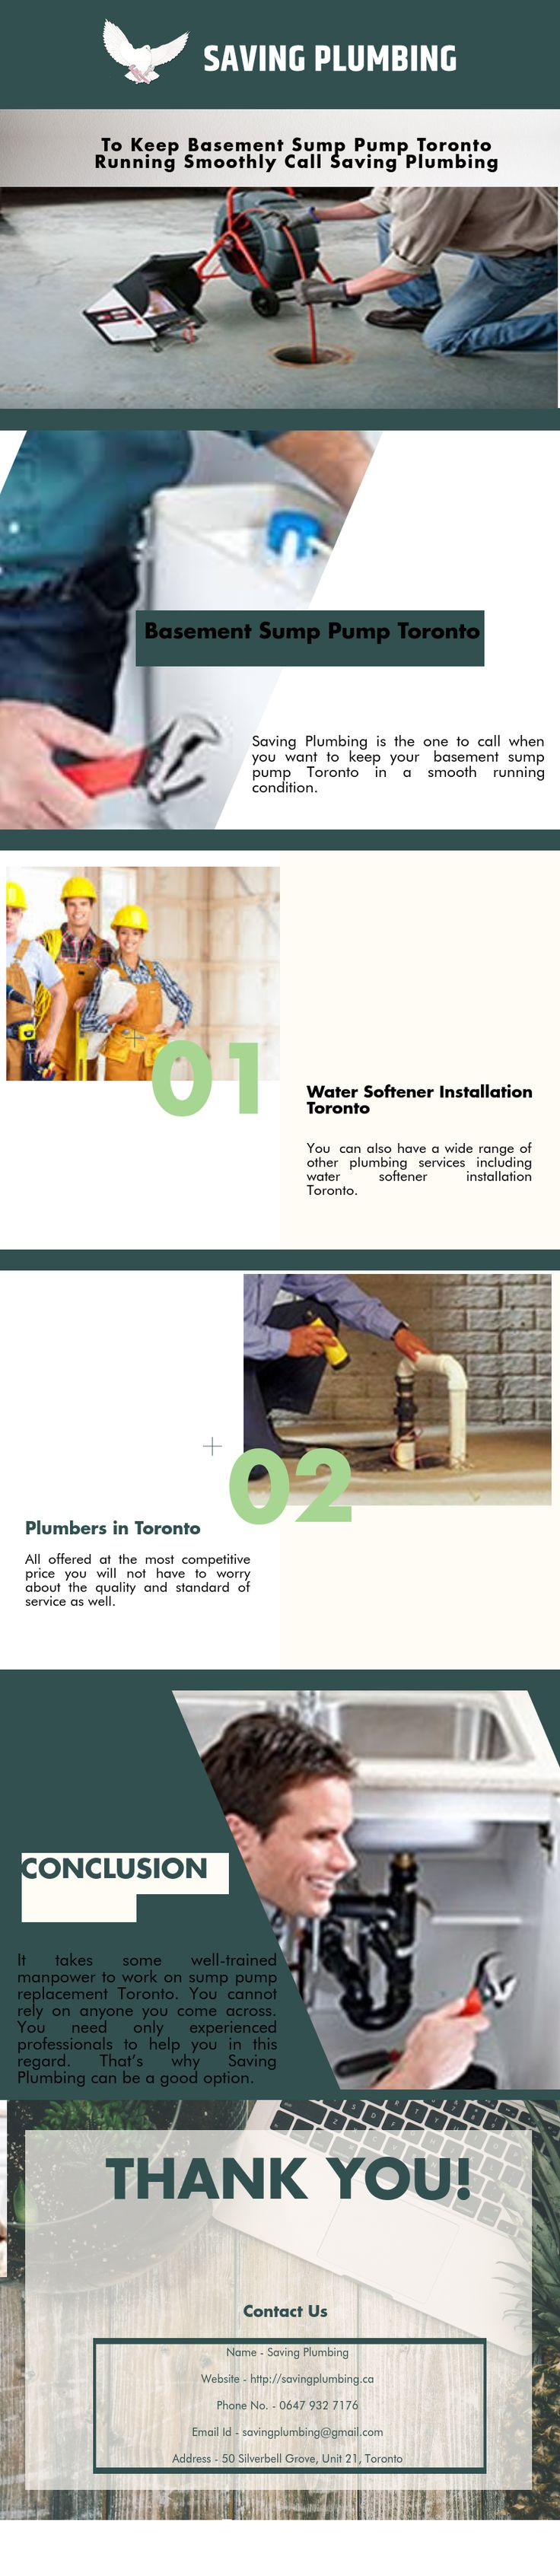 Saving Plumbing is the one to call when you want to keep your basement sump pump Toronto in a smooth running condition.  •You can also have a wide range of other plumbing services including water softener installation Toronto.  •All offered at the most competitive price you will not have to worry about the quality and standard of service as well.